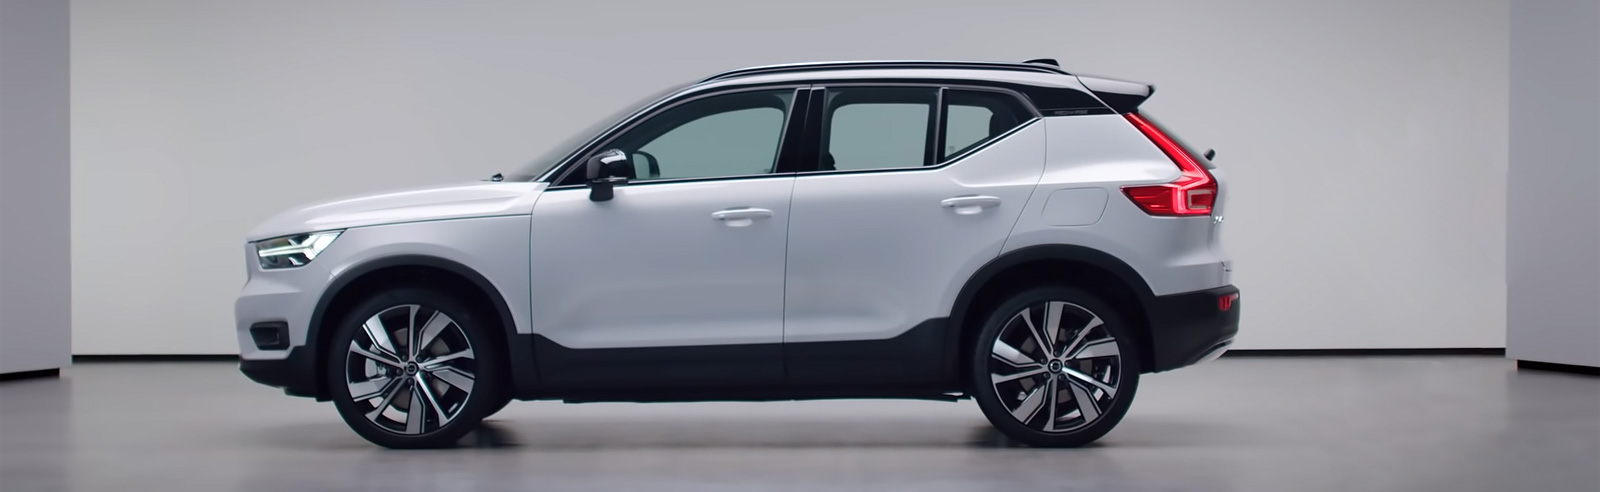 Volvo XC40 Recharge P8 AWD available for order in the UK